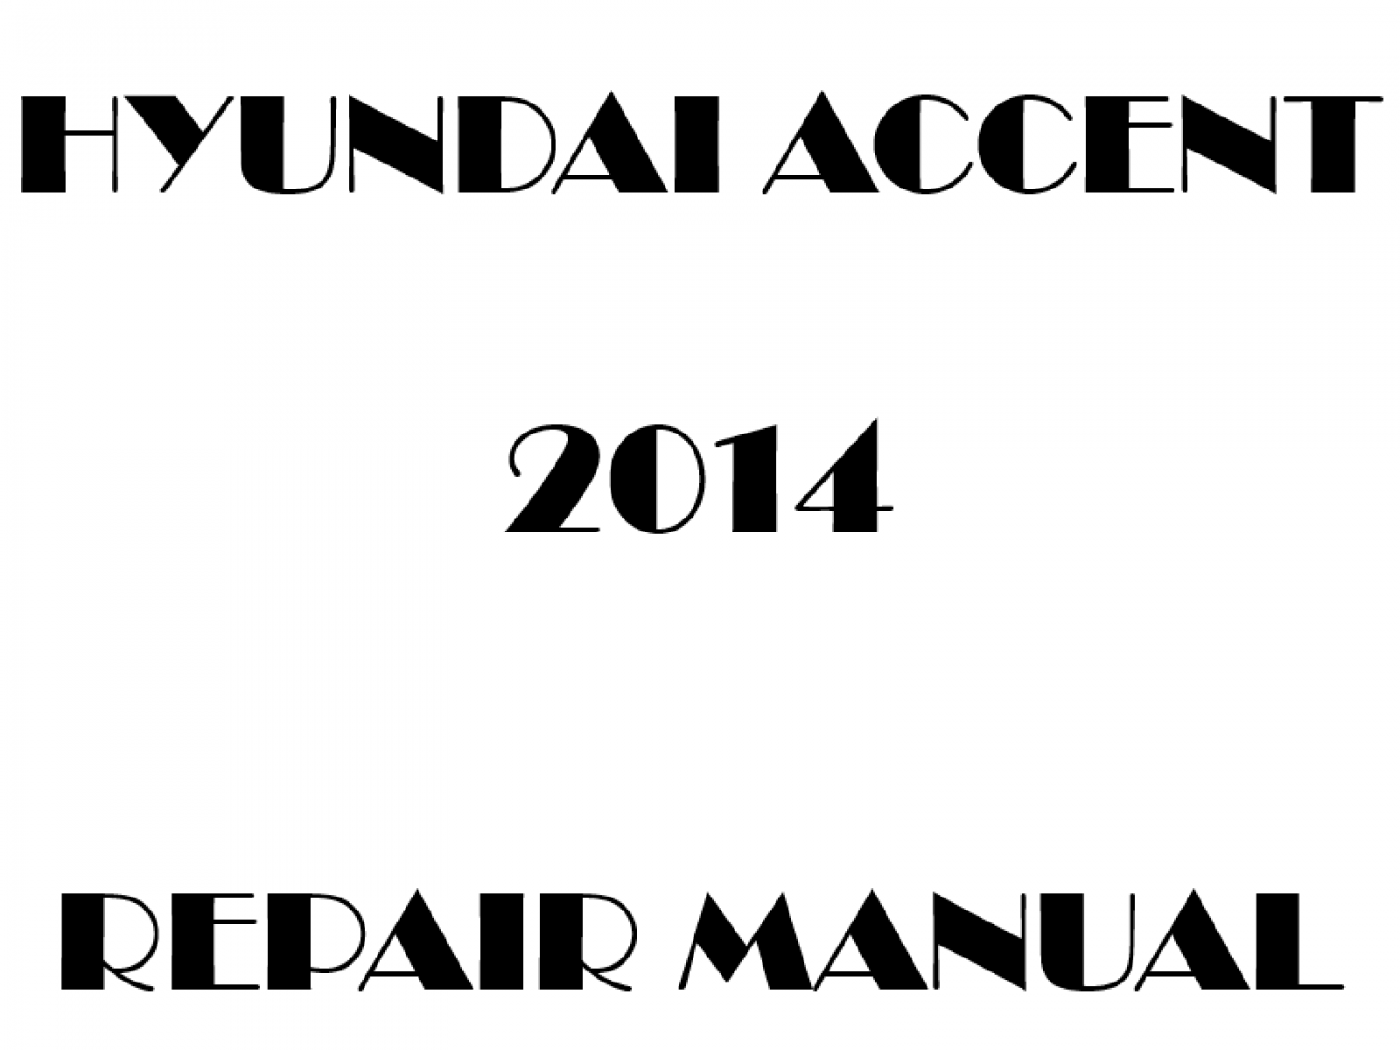 2014 Hyundai Accent repair manual